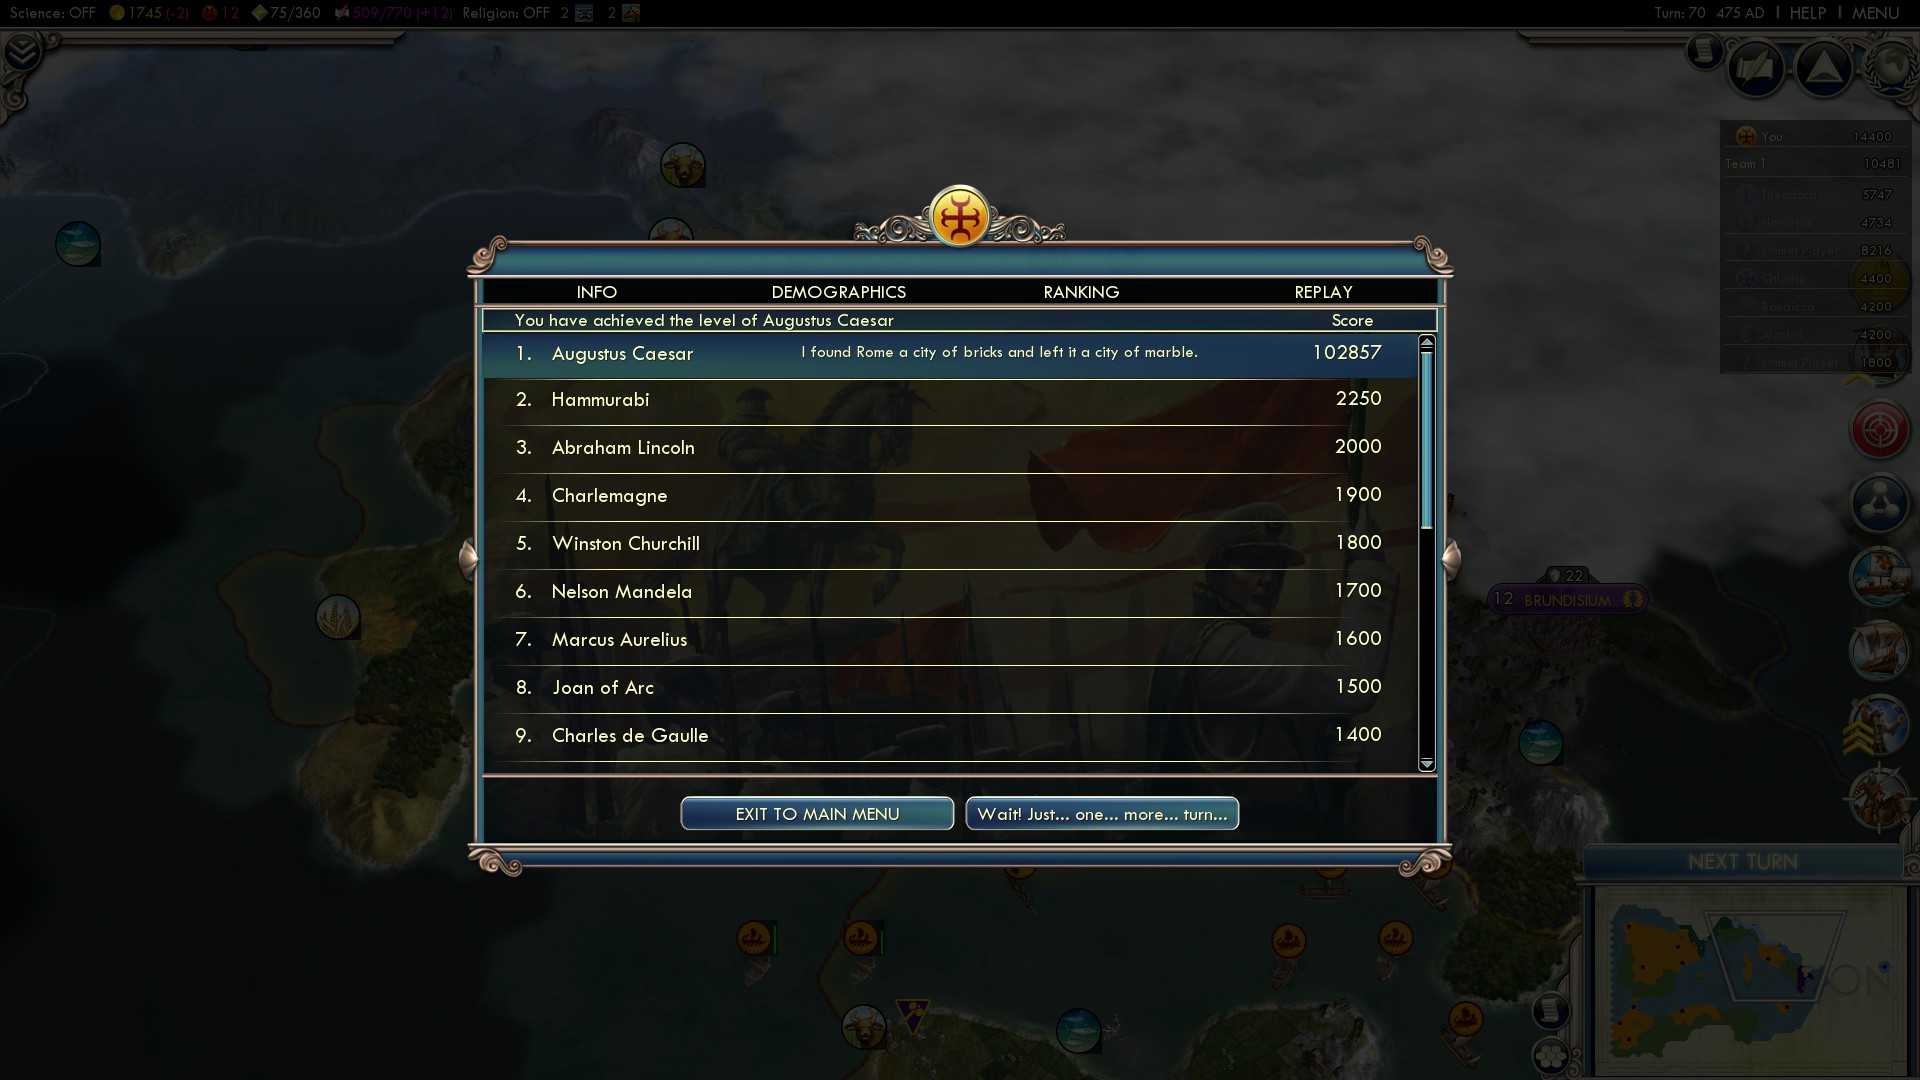 Civilization 5 Fall of Rome Vandals Deity - Normalized Score